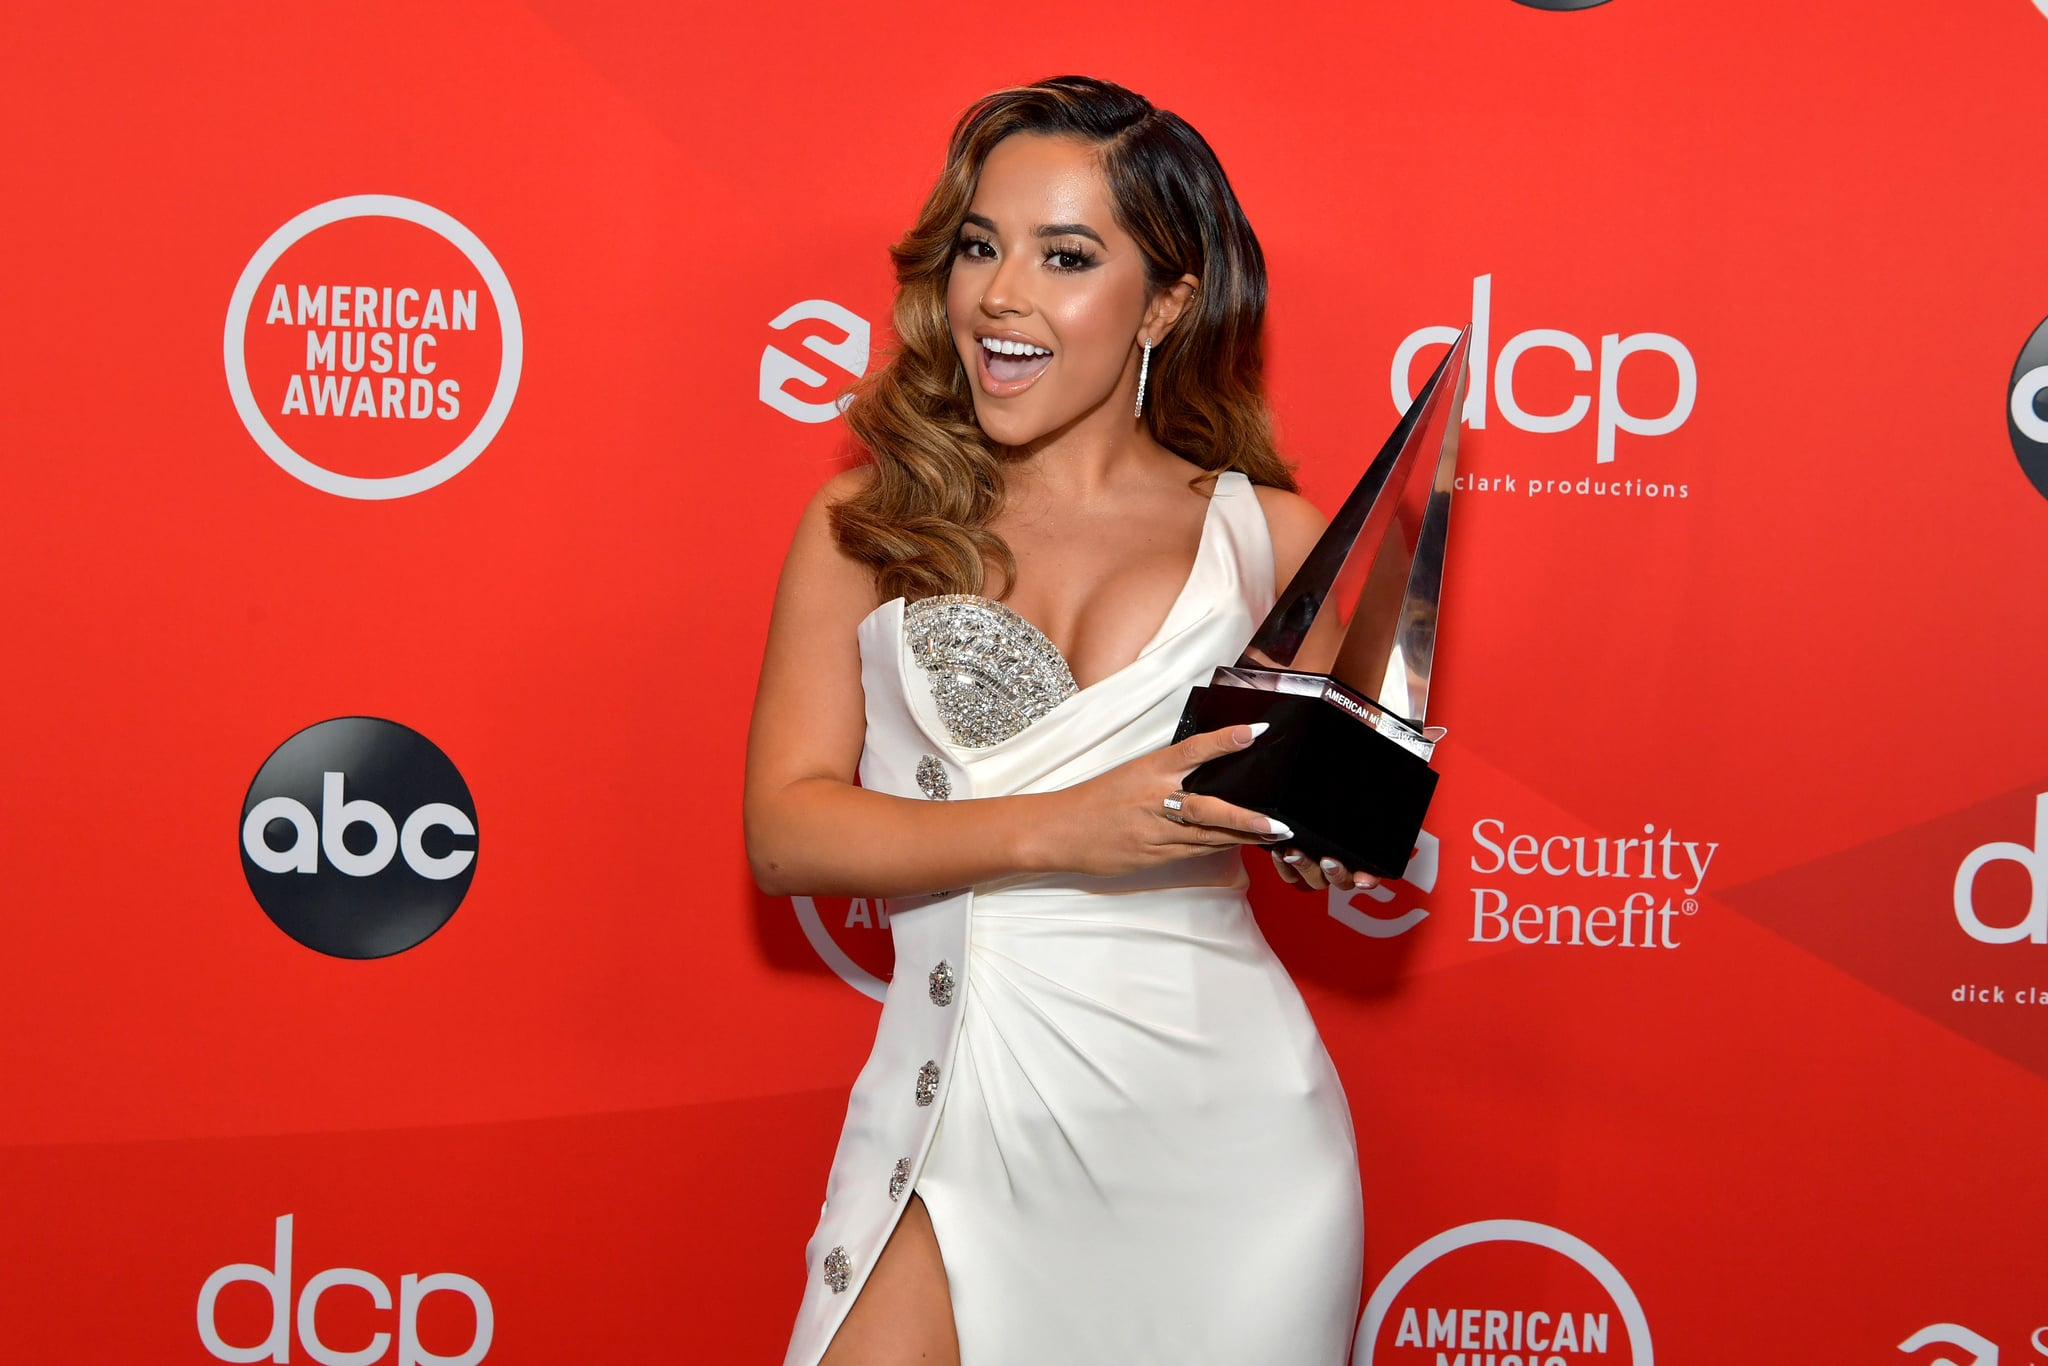 LOS ANGELES, CALIFORNIA - NOVEMBER 22: In this image released on November 22, Becky G poses with the award for Favorite Latin Female Artist at the 2020 American Music Awards at Microsoft Theater on November 22, 2020 in Los Angeles, California. (Photo by Emma McIntyre /AMA2020/Getty Images for dcp)